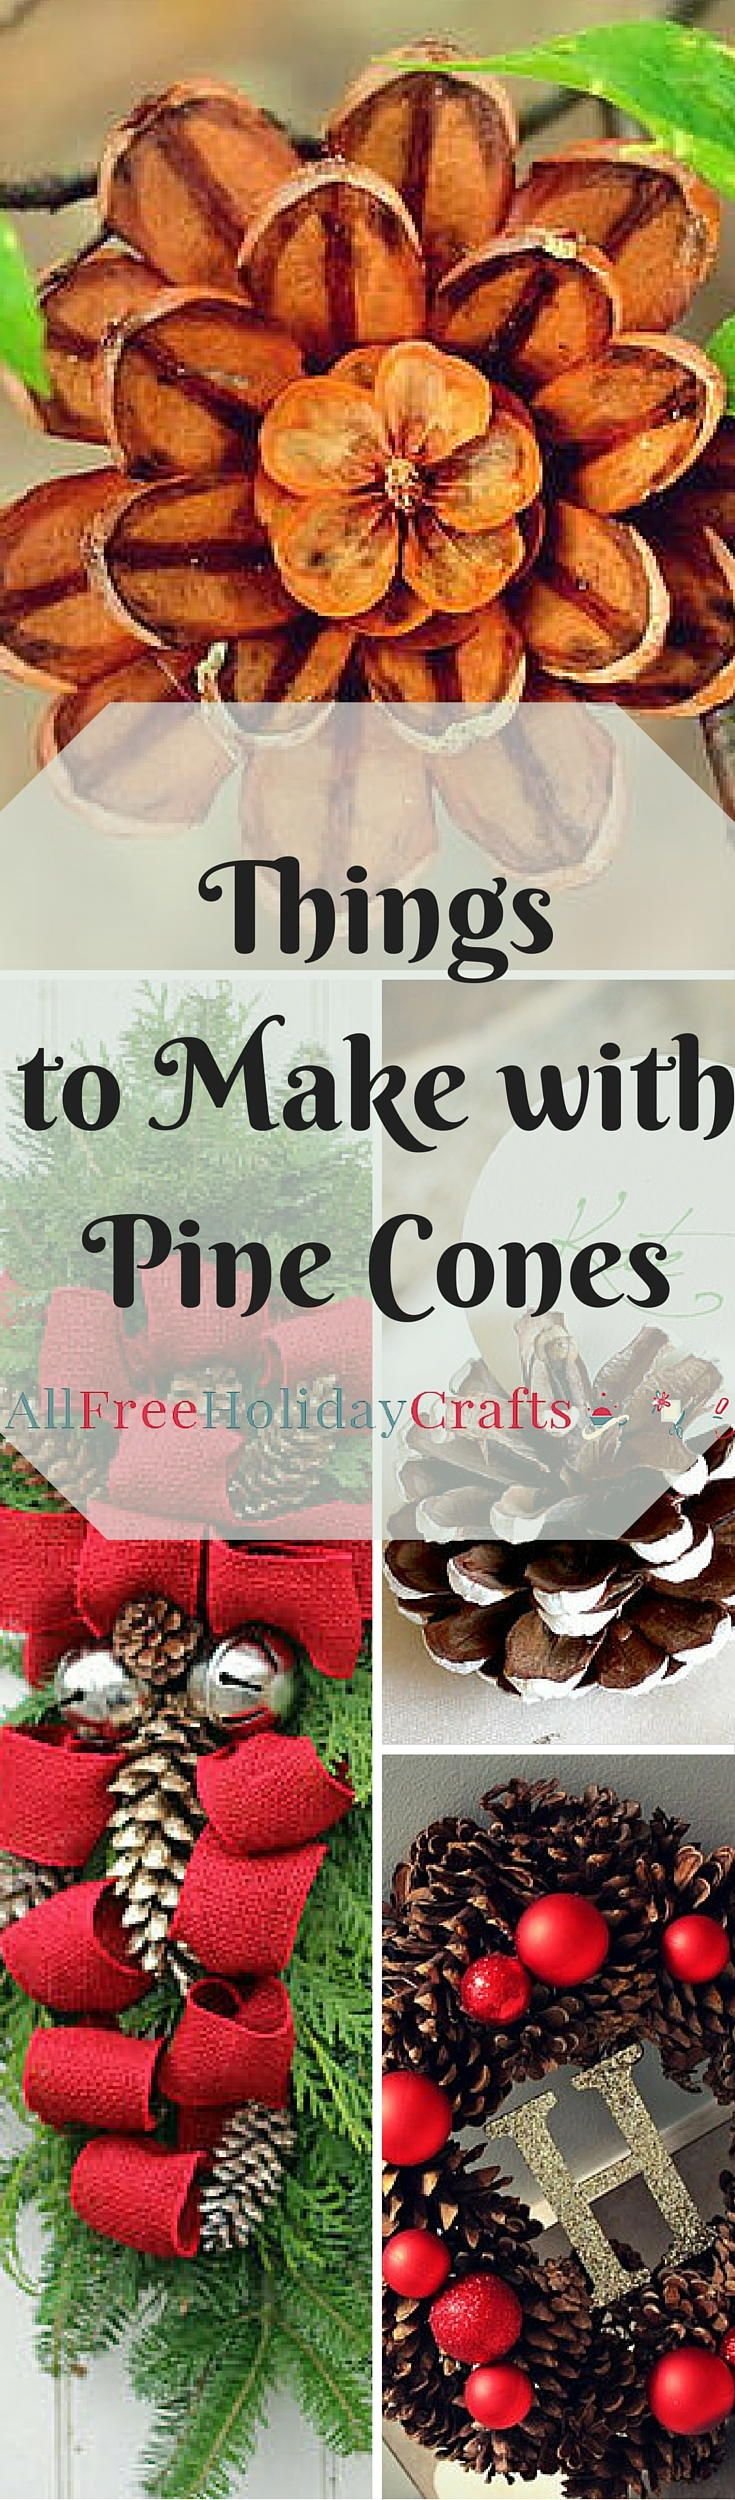 Nature crafts 27 things to make with pine cones for Crafts for seniors with limited dexterity